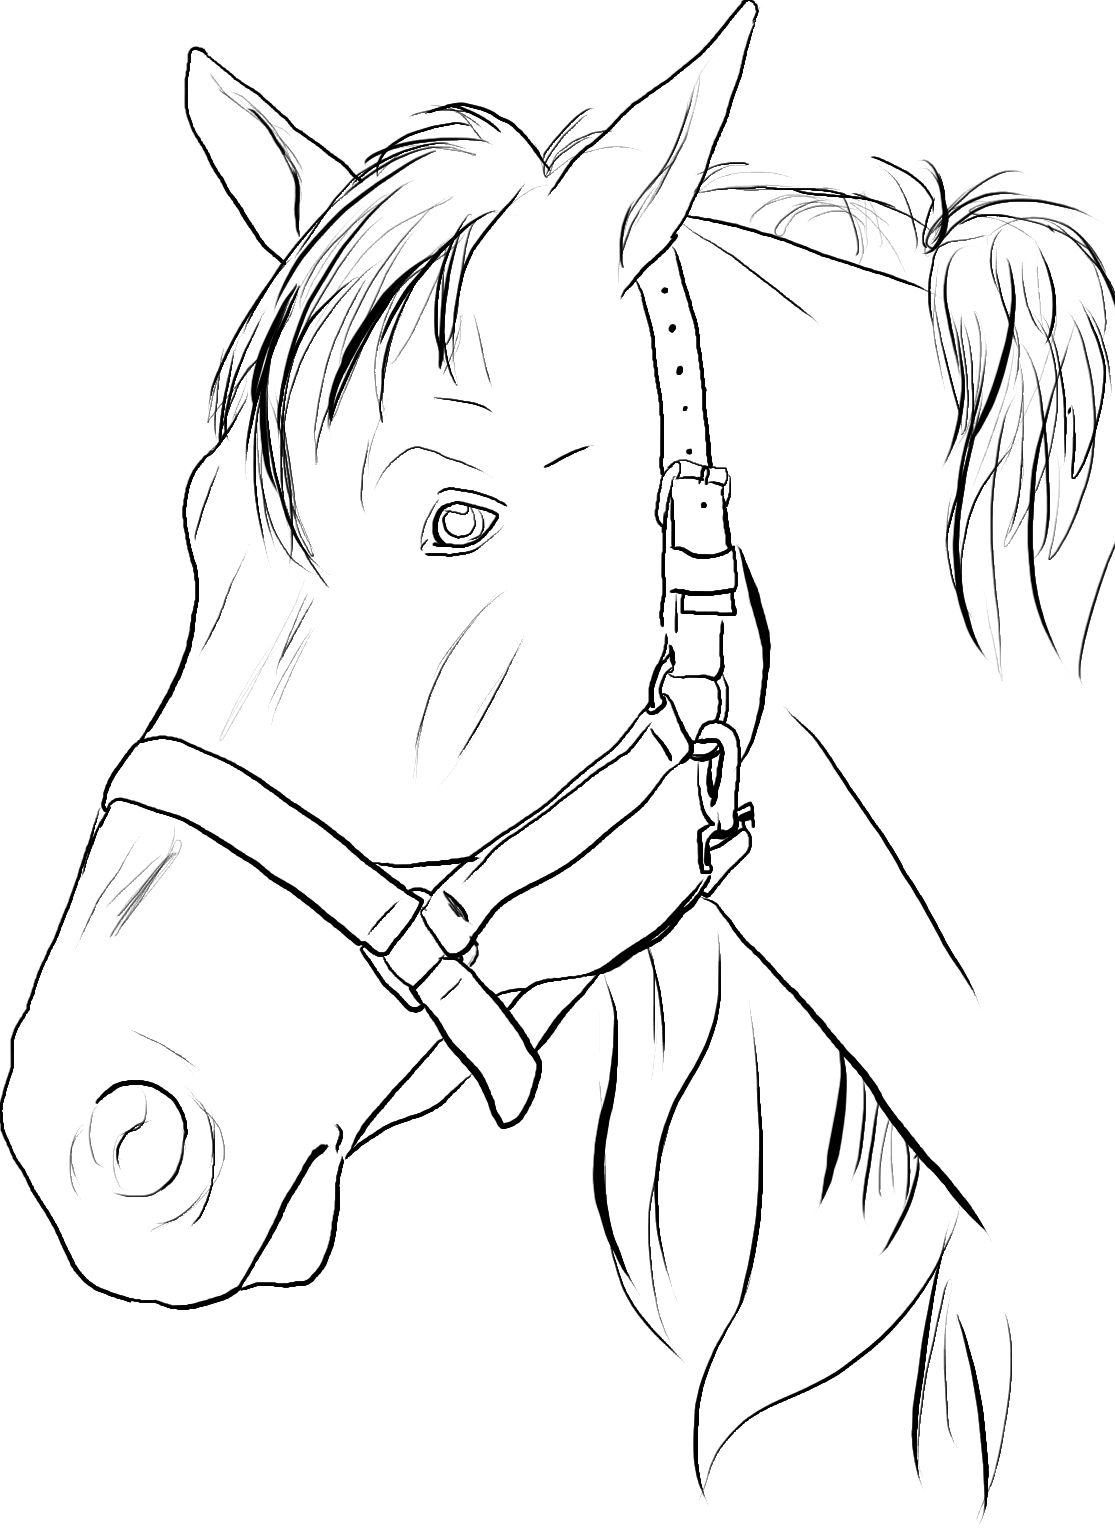 coloring picture of horse to print hop hop hop paardje in galop